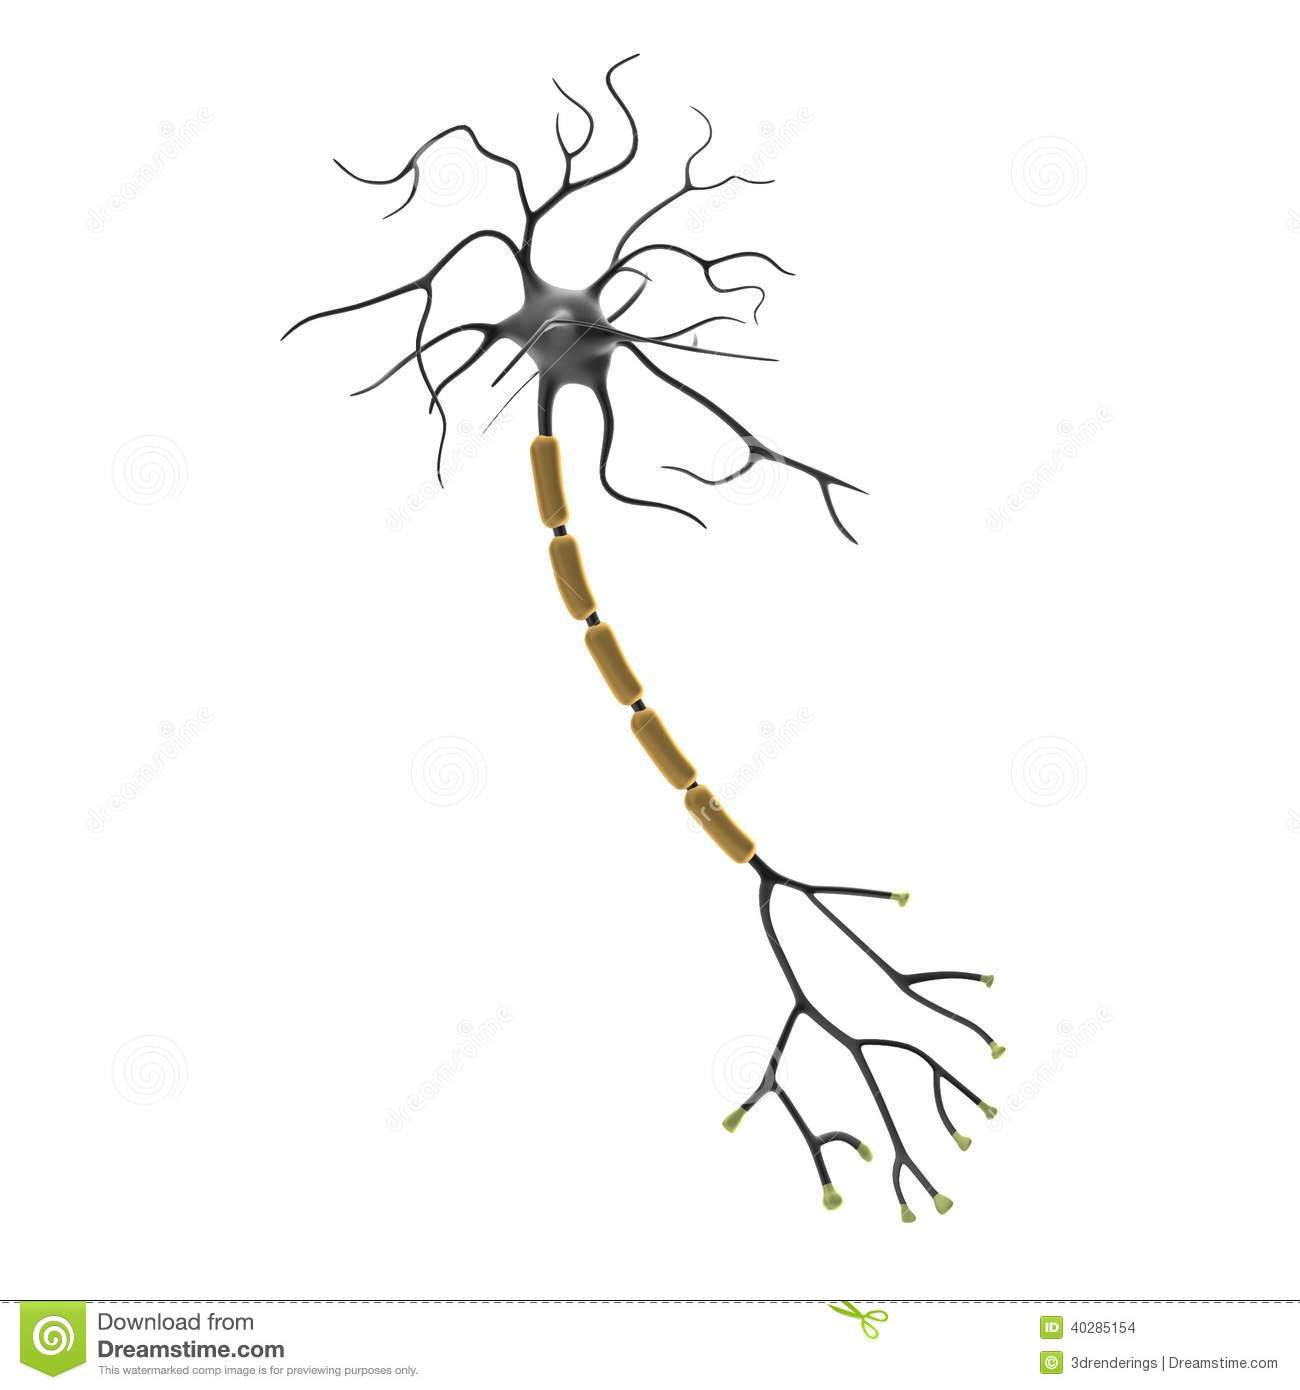 File Anatomy and physiology of animals Relation btw sensory  relay  26 motor neurons in addition Neuron Clipart moreover File Anatomy and physiology unlabeled neuron as well Worksheet 1 further Neurociencia Para Ninos. on unlabeled nerve cell